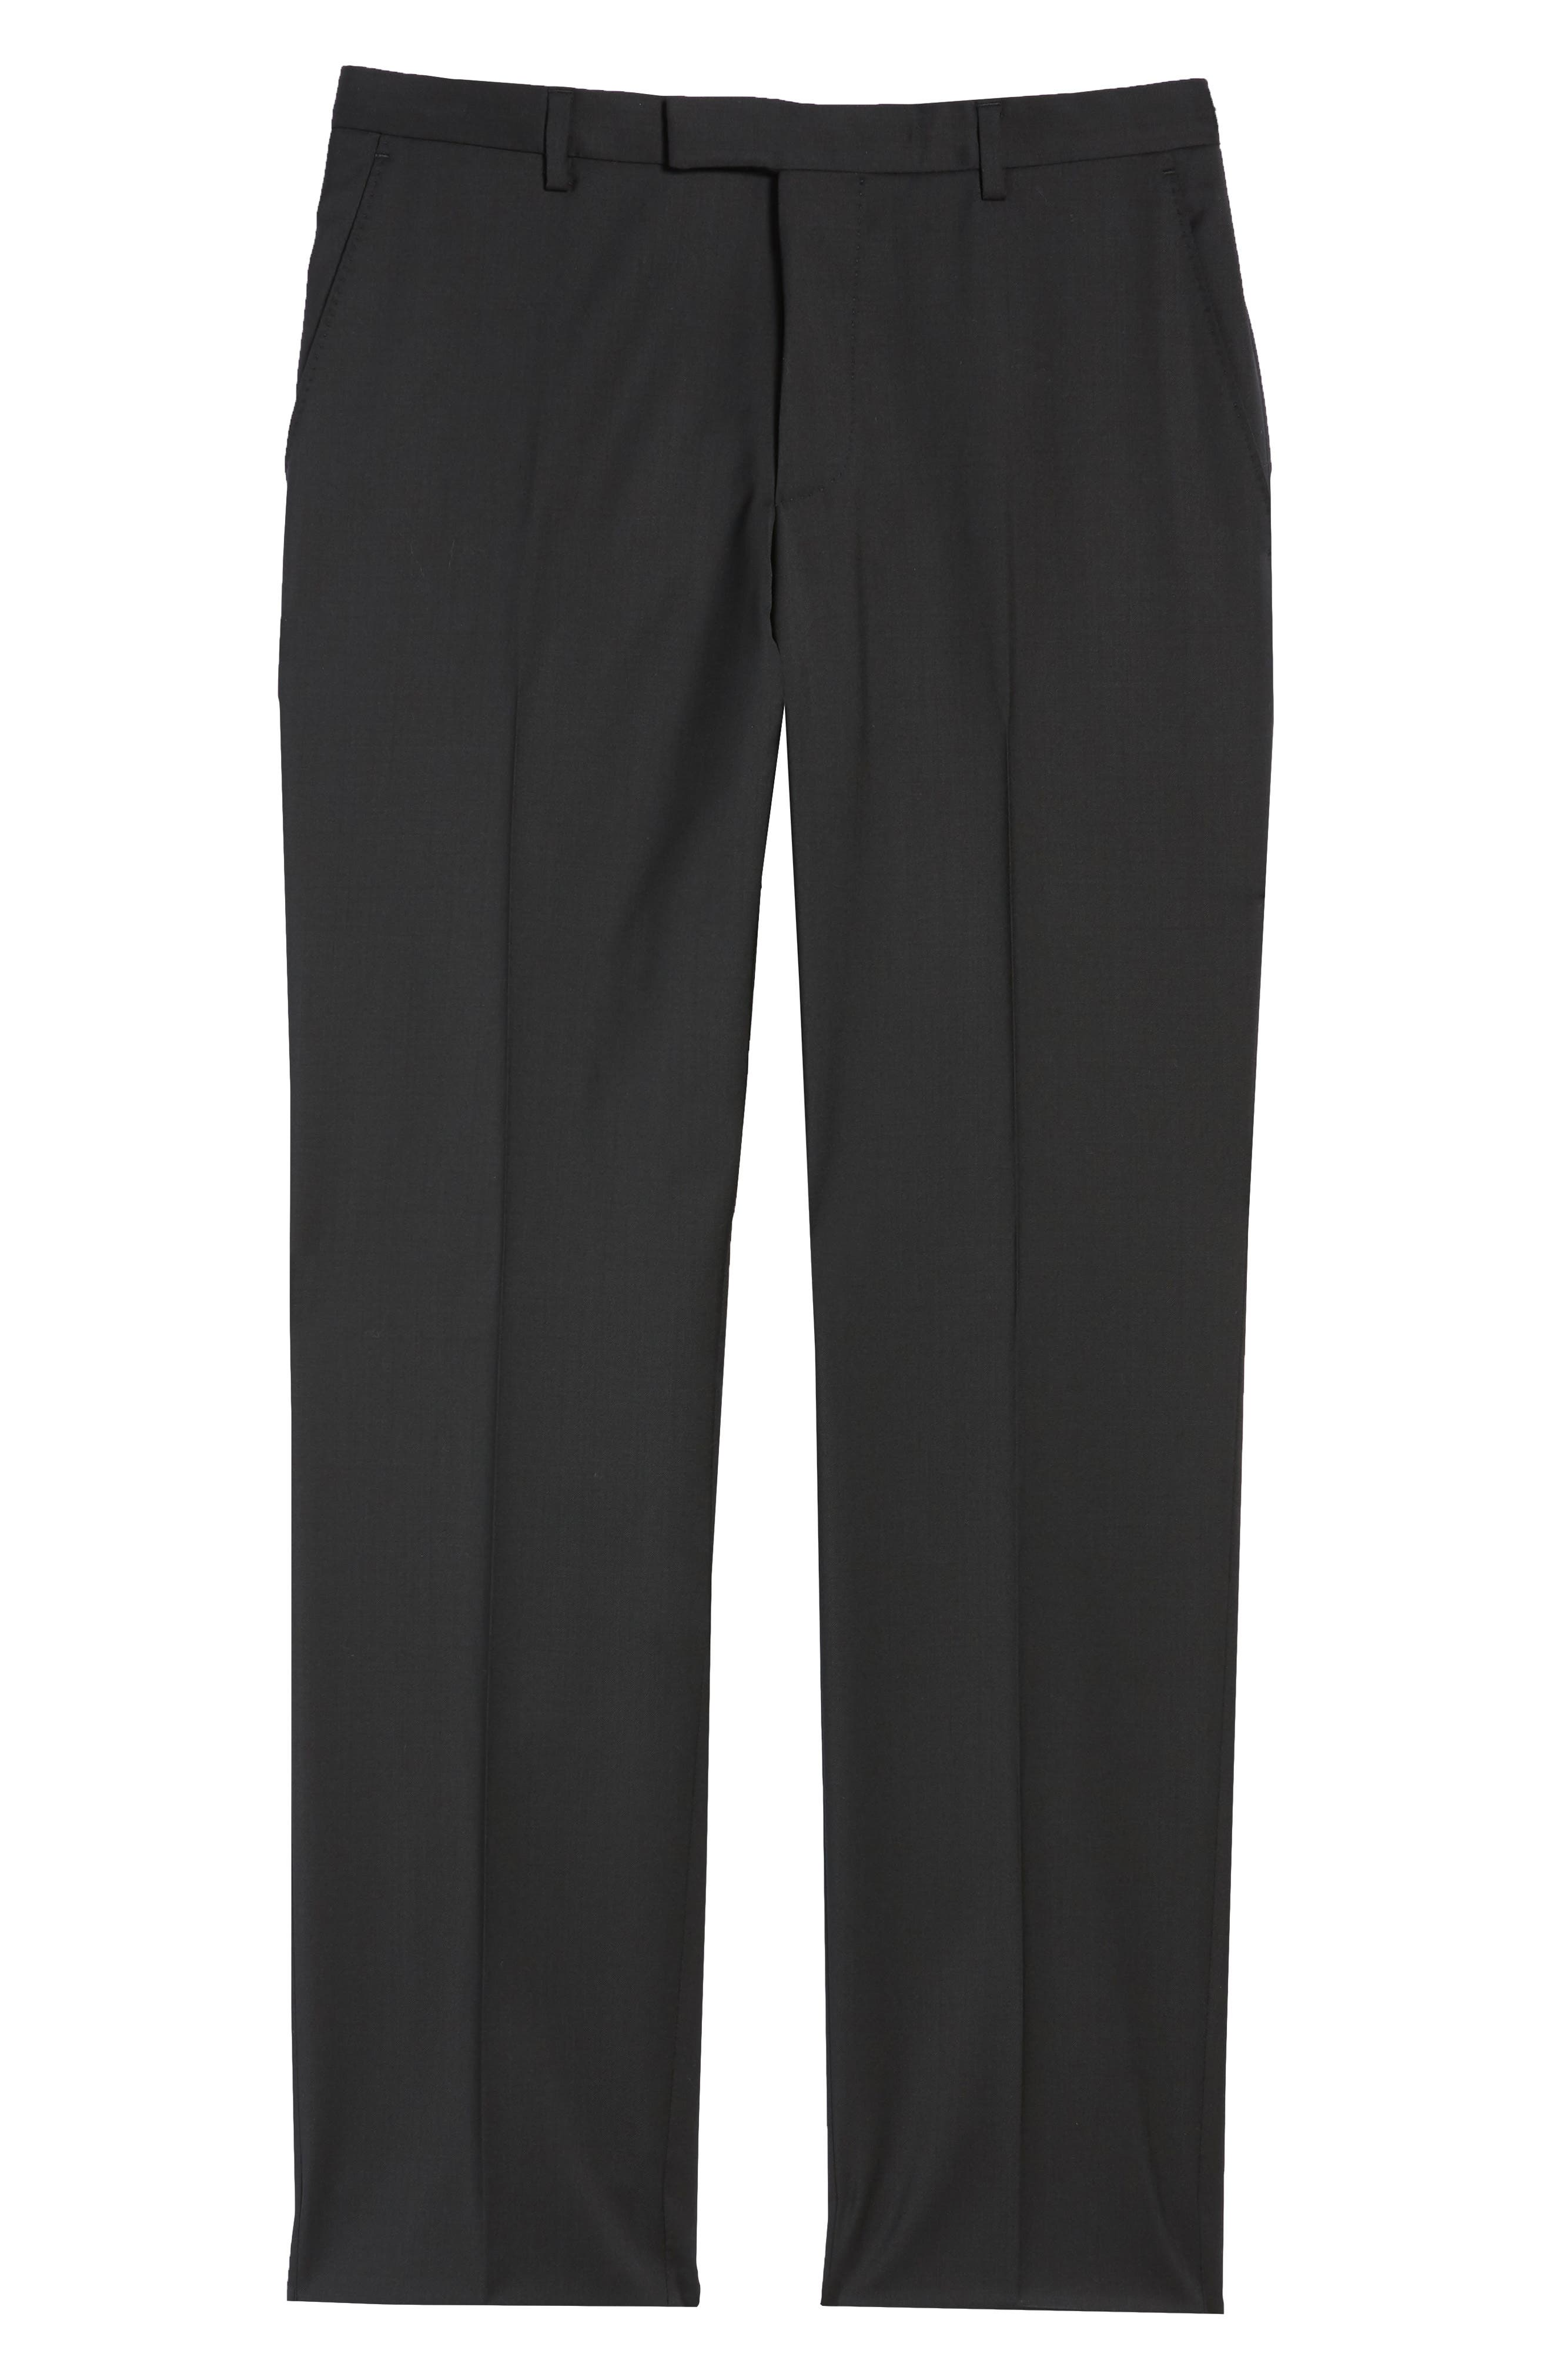 Leenon Flat Front Regular Fit Solid Wool Trousers,                             Alternate thumbnail 6, color,                             Black